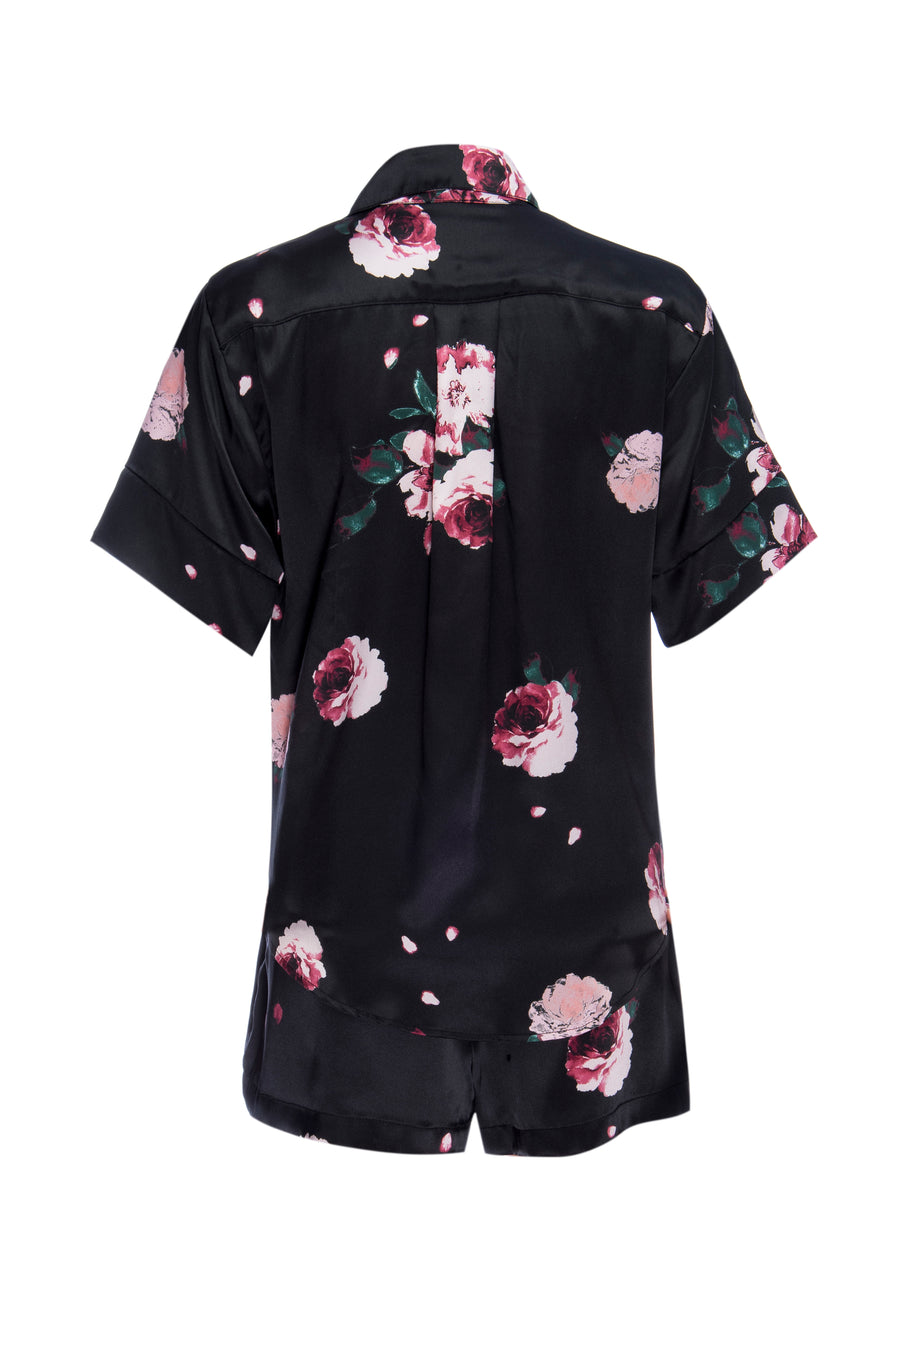 Silk Charmeuse Short Sleeved PJ Top + Short Set: Black Rose Print